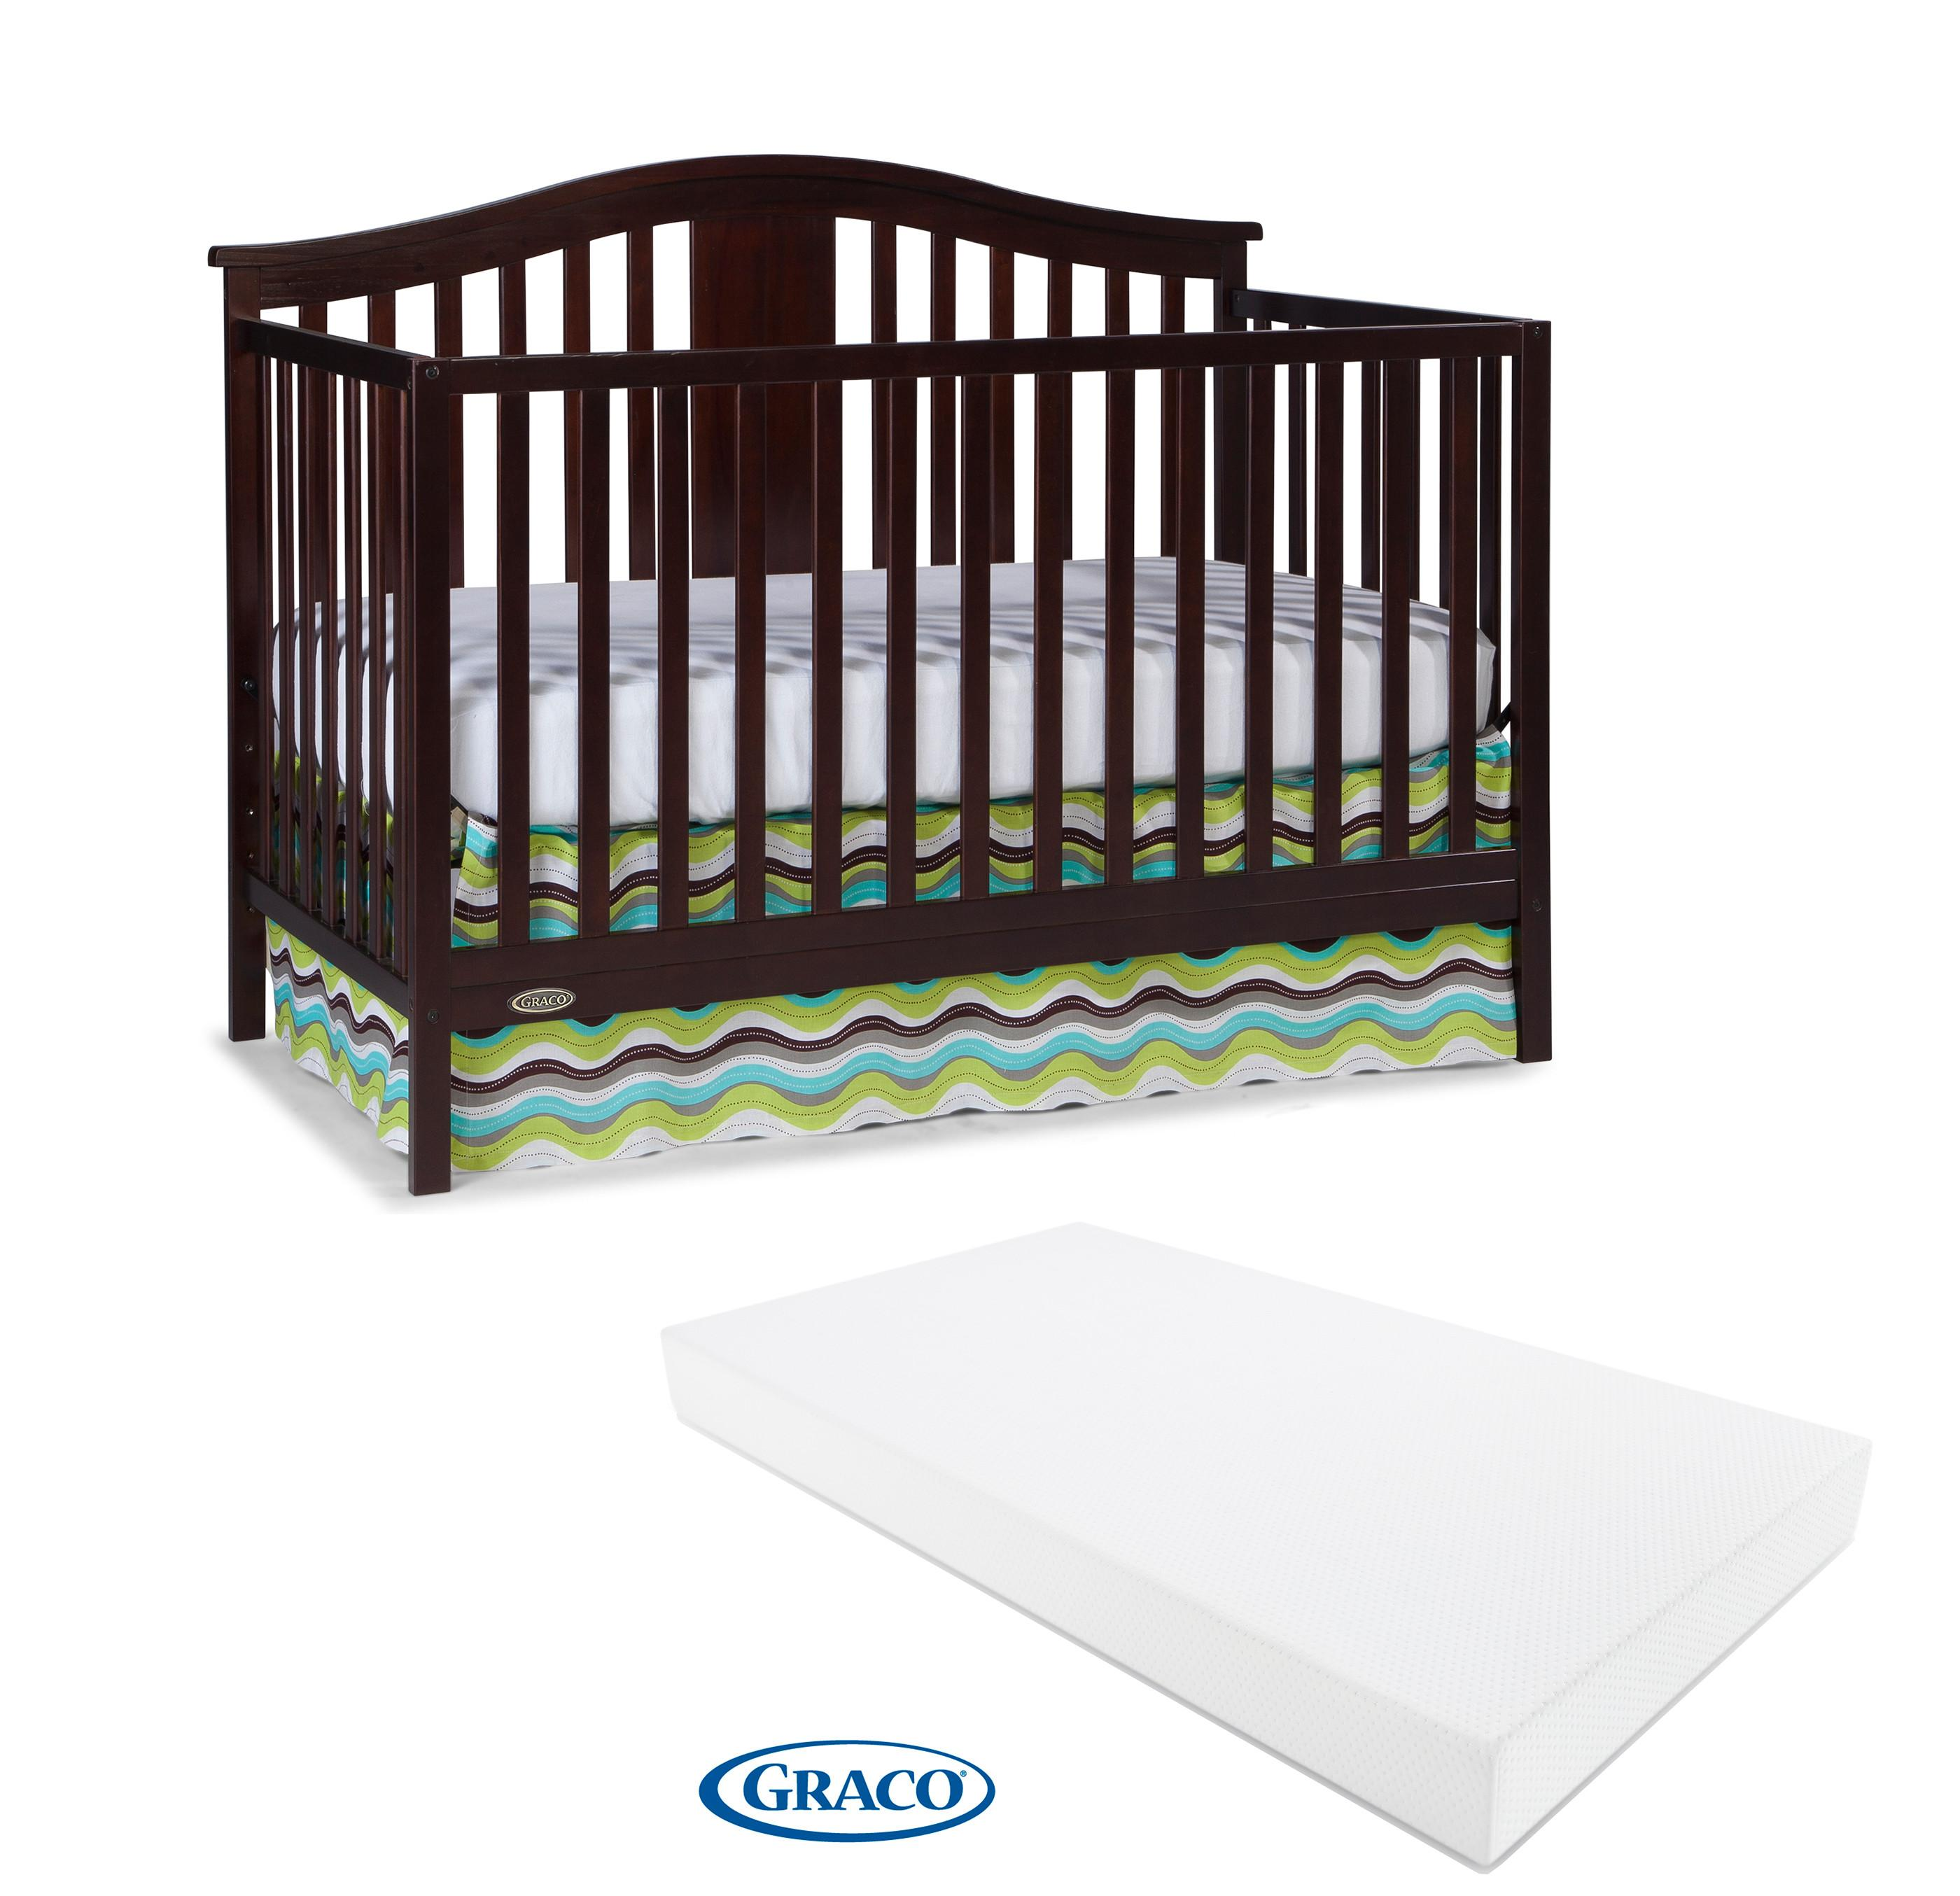 Amazon.com : Graco Solano 4-in-1 Convertible Crib and ...